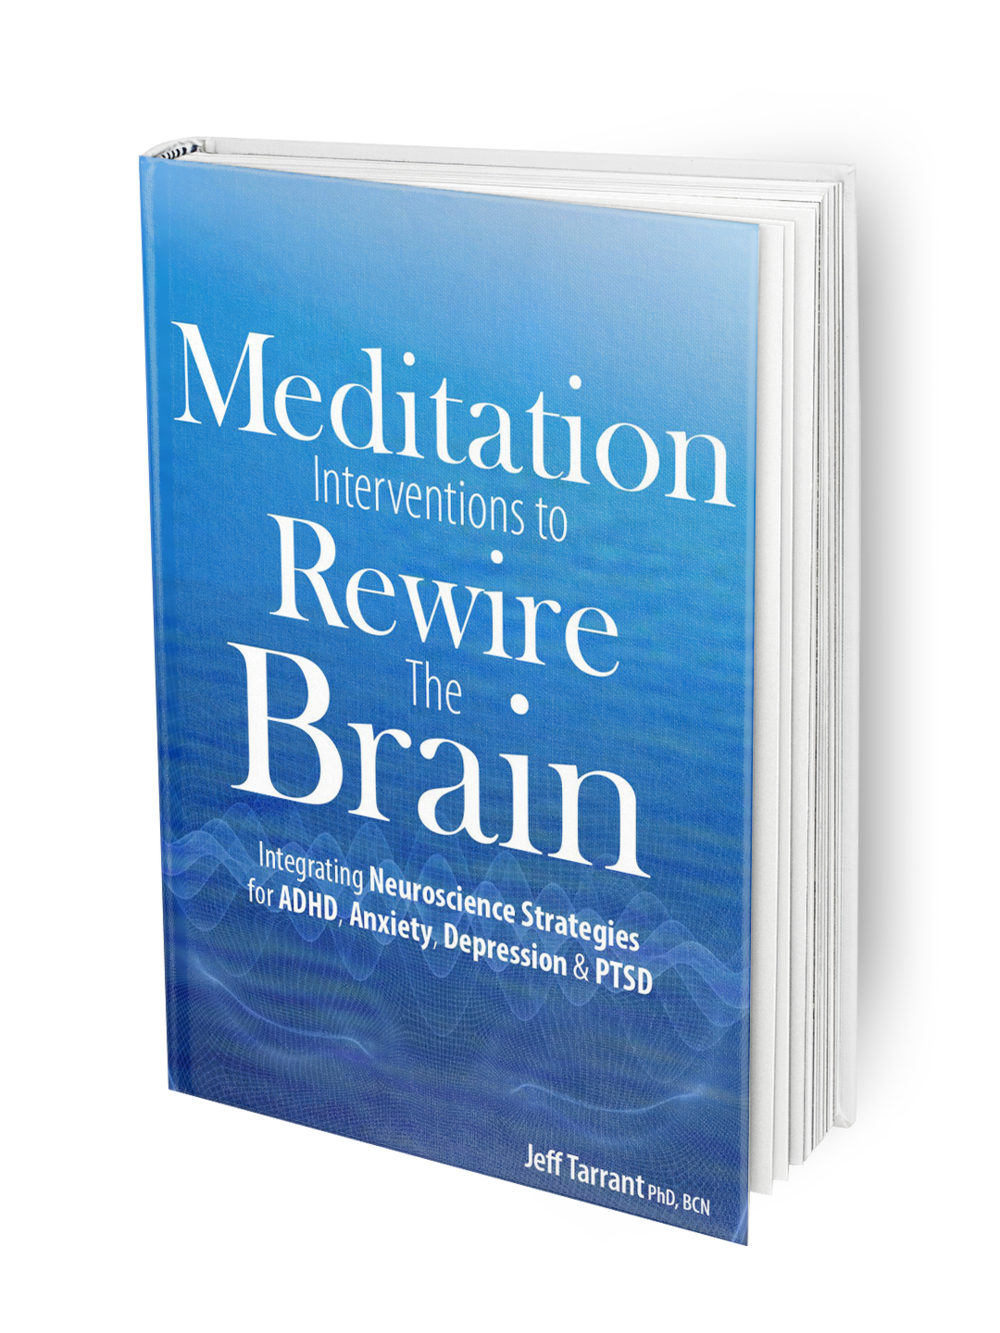 meditation-interventions-to-rewire-the-brain-dr-jeff-tarrant.png